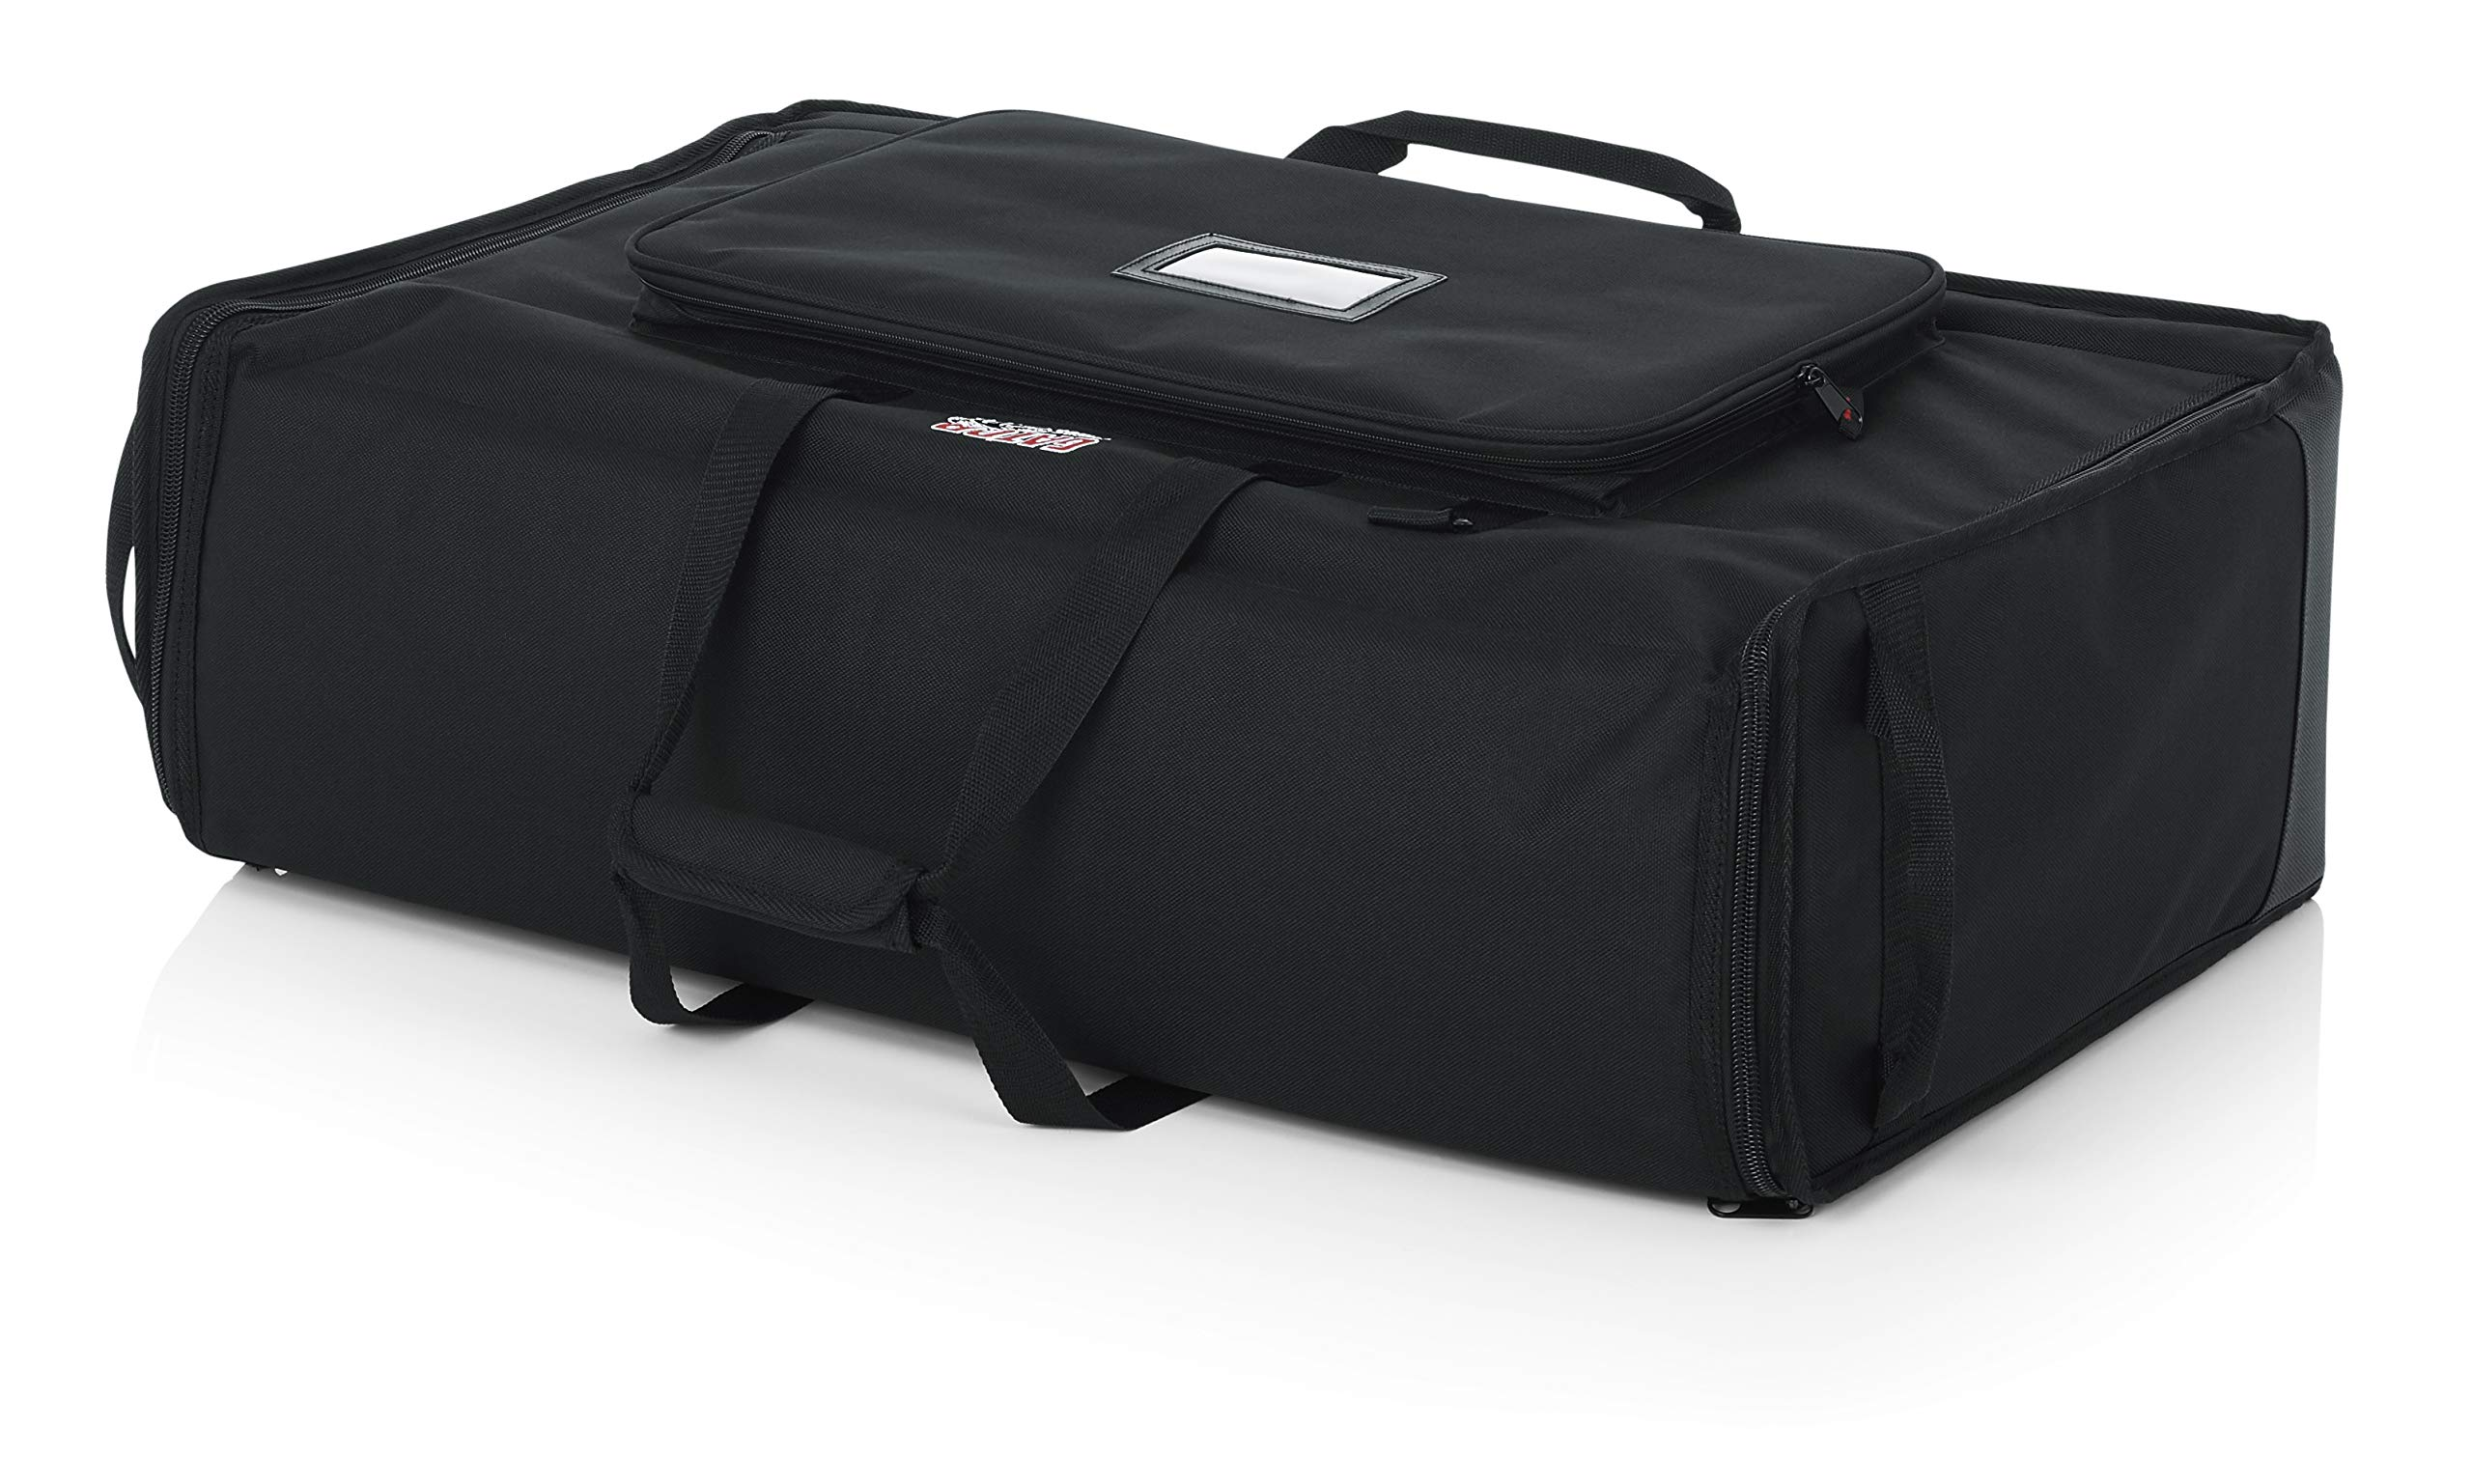 Gator Cases Padded Nylon Dual Carry Tote Bag for Transporting (2) LCD Screens, Monitors and TVs Between 27'' - 32''; (G-LCD-TOTE-MDX2) by Gator (Image #11)